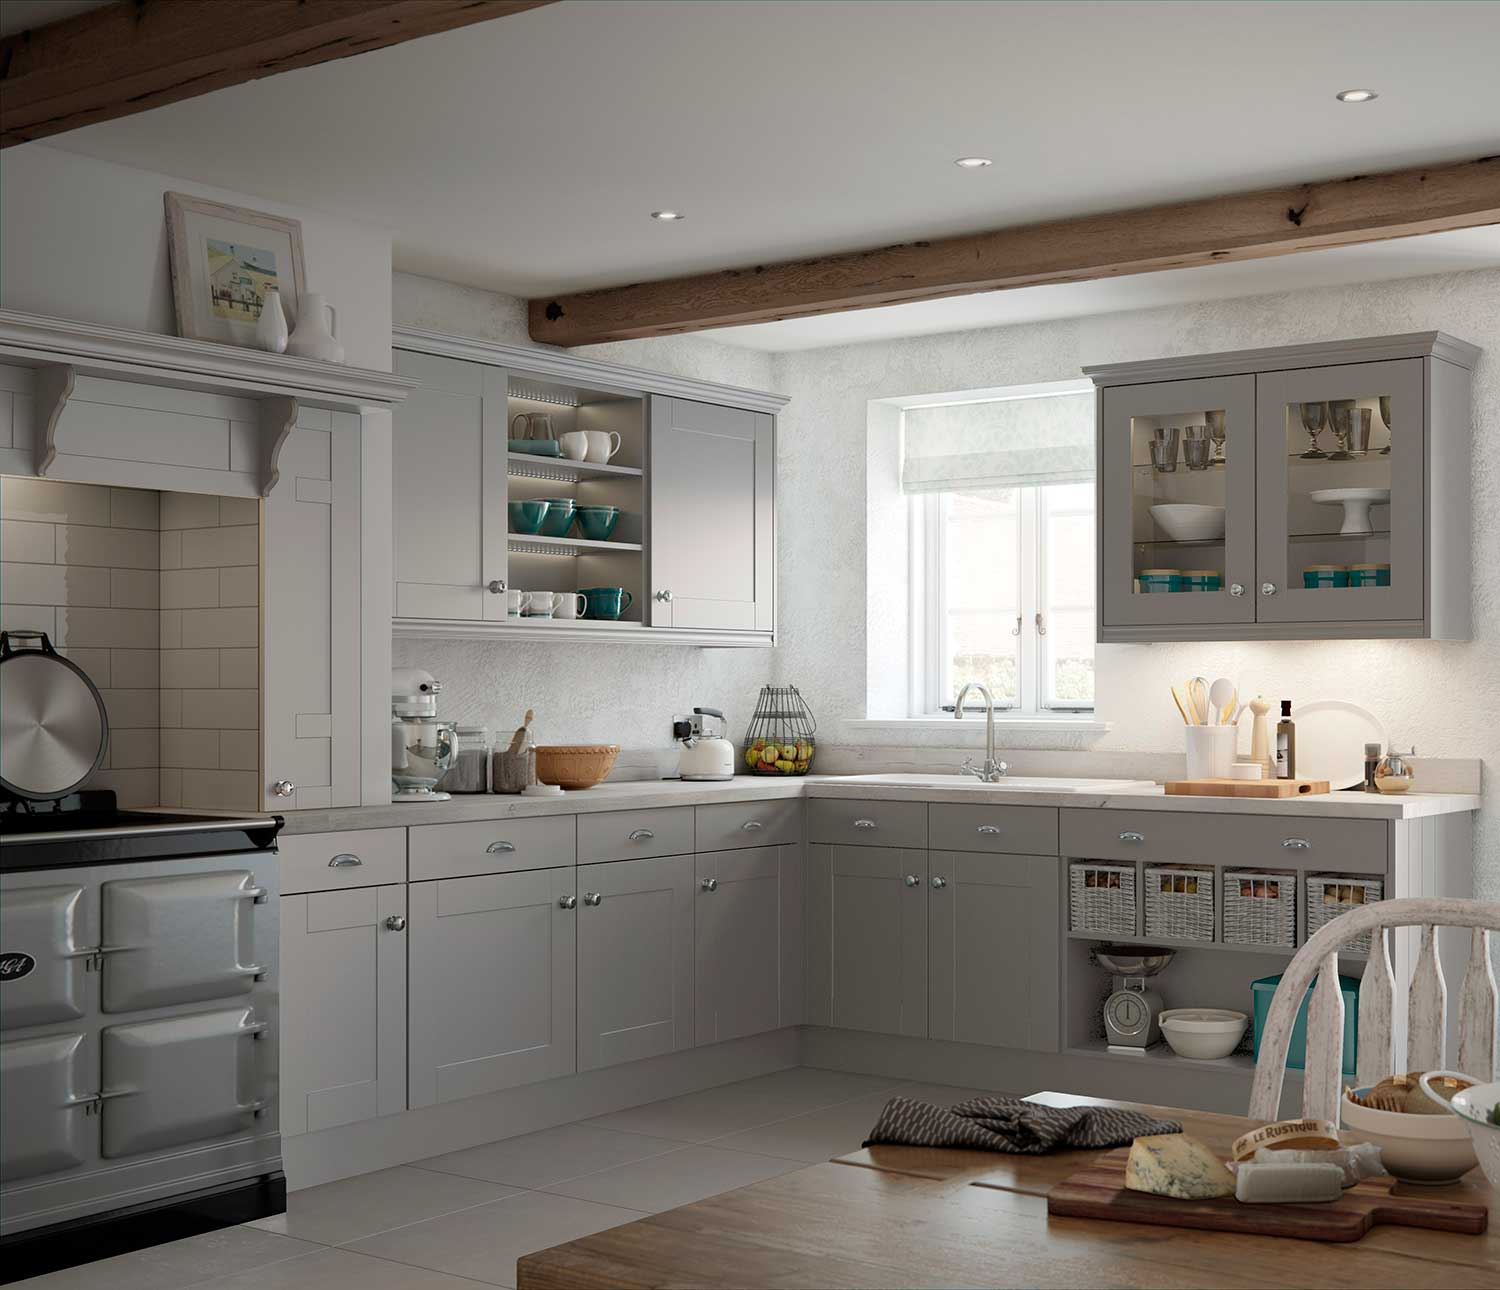 Canterbury classic shaker kitchen shown in Dust Grey